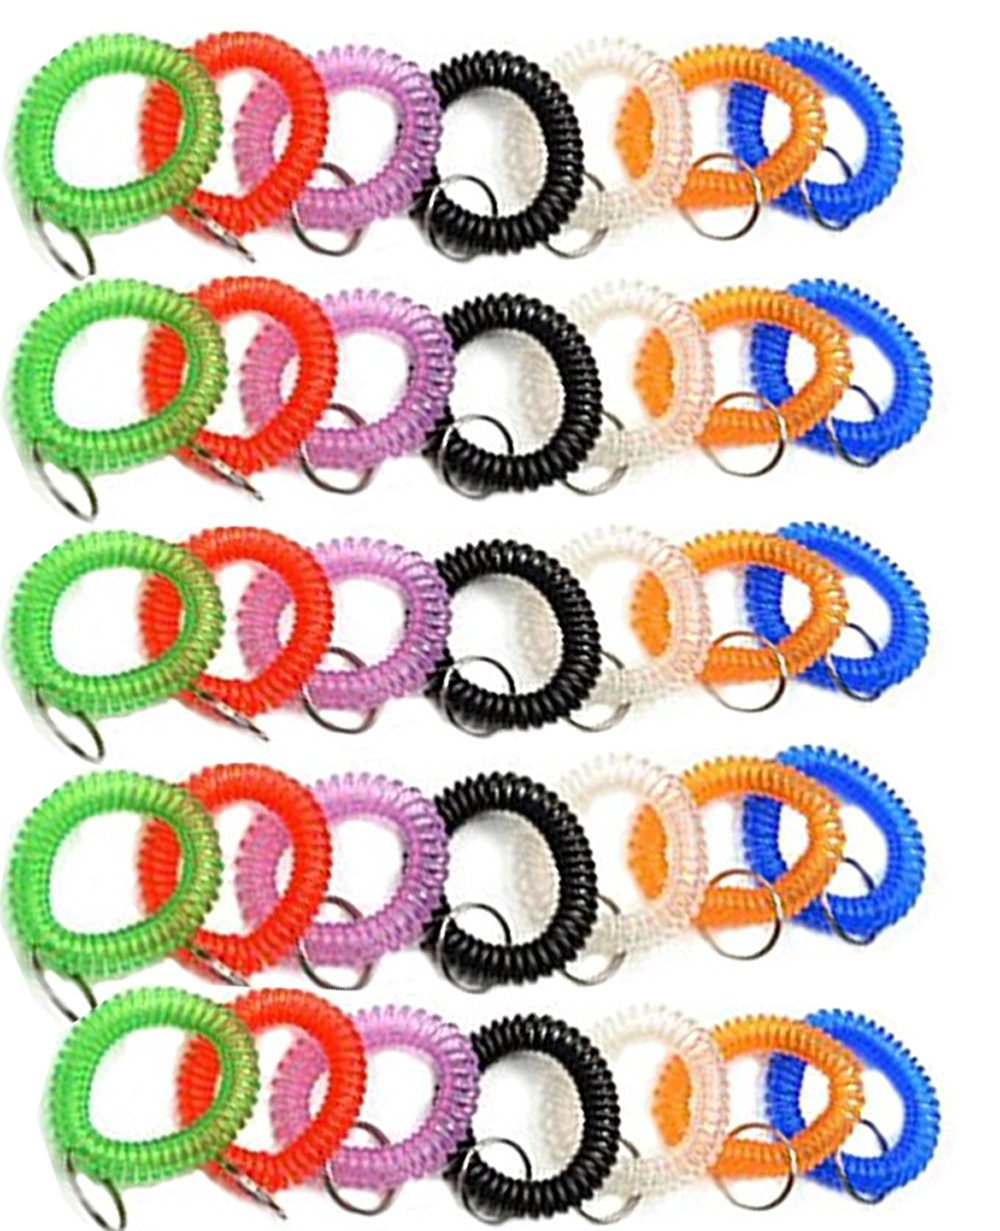 25-47 Length Pack of 10 Gear Keeper TL1-3023-10 3//4 Super Coil Personal Tool Tether//Lanyard with Stainless Steel Locking Carabiner Side Release Lanyard and Tool Hanger